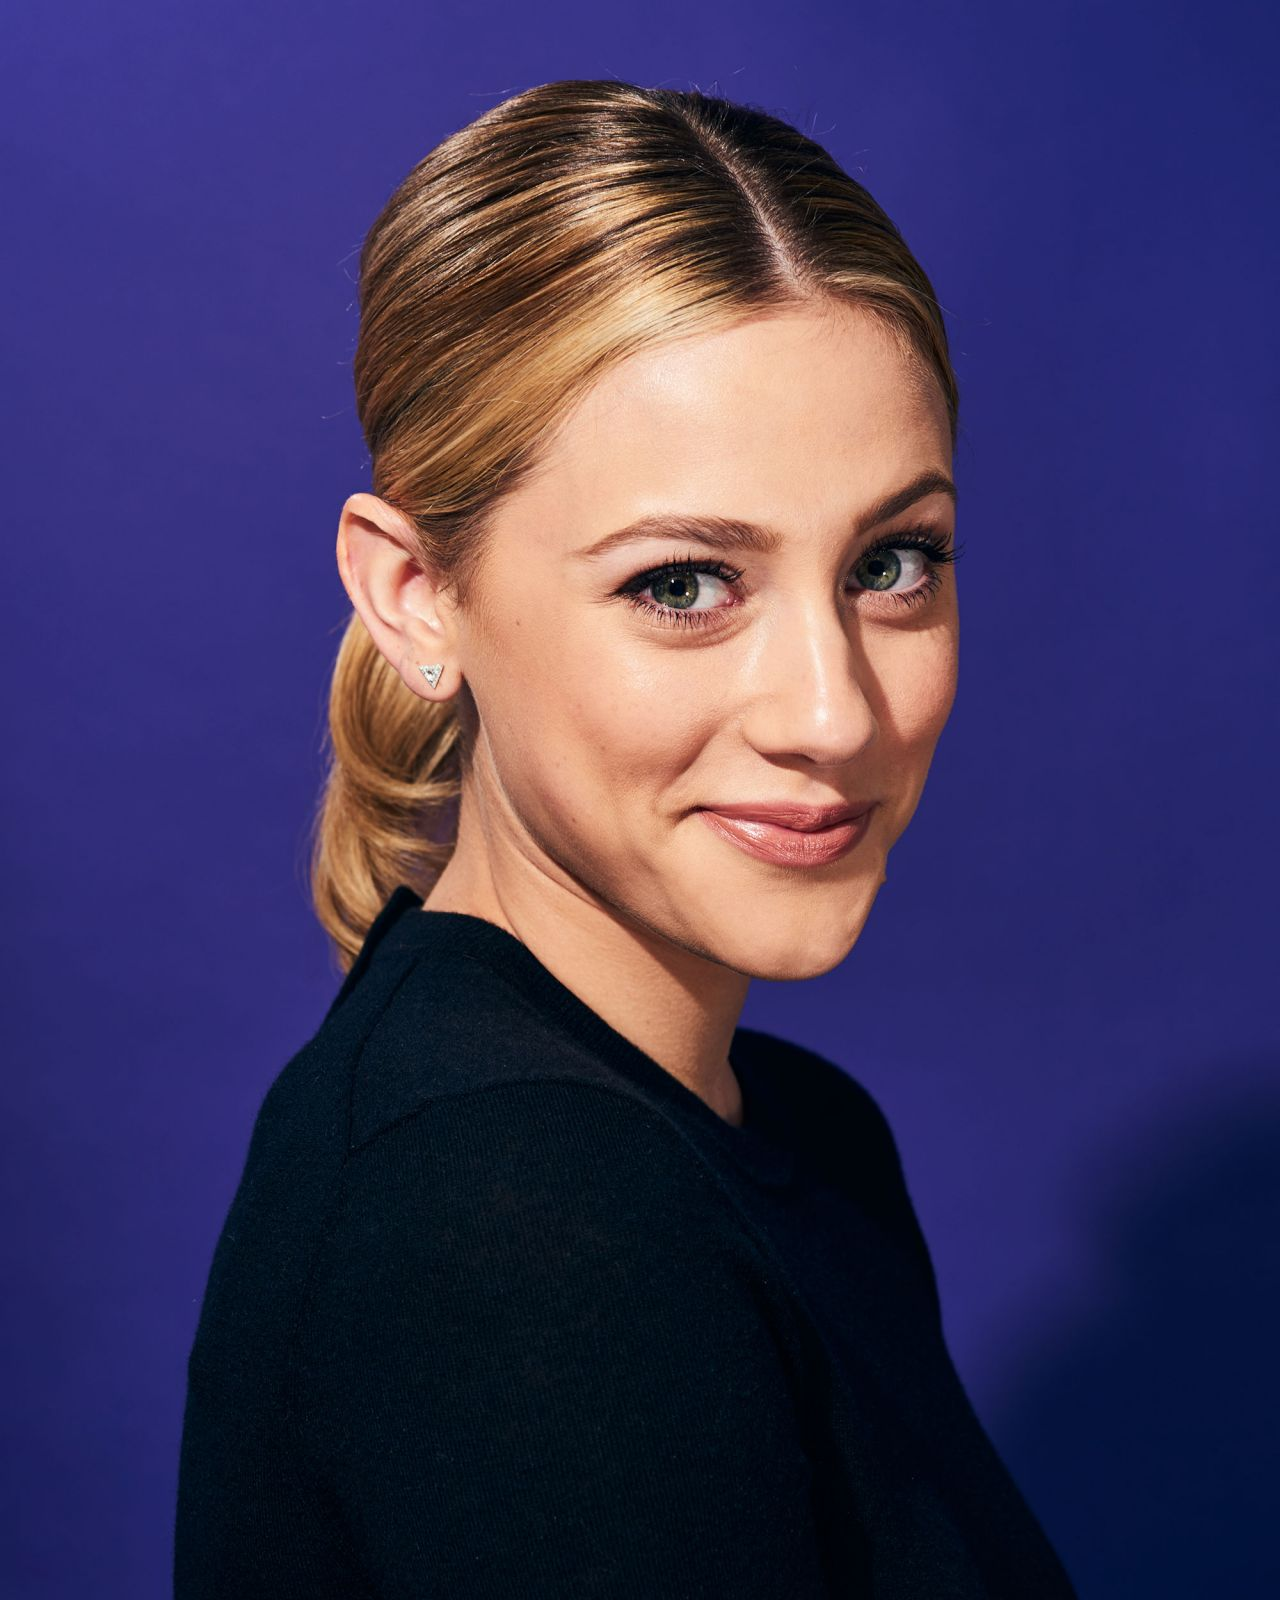 Lili reinhart portrait 2019 for vulture